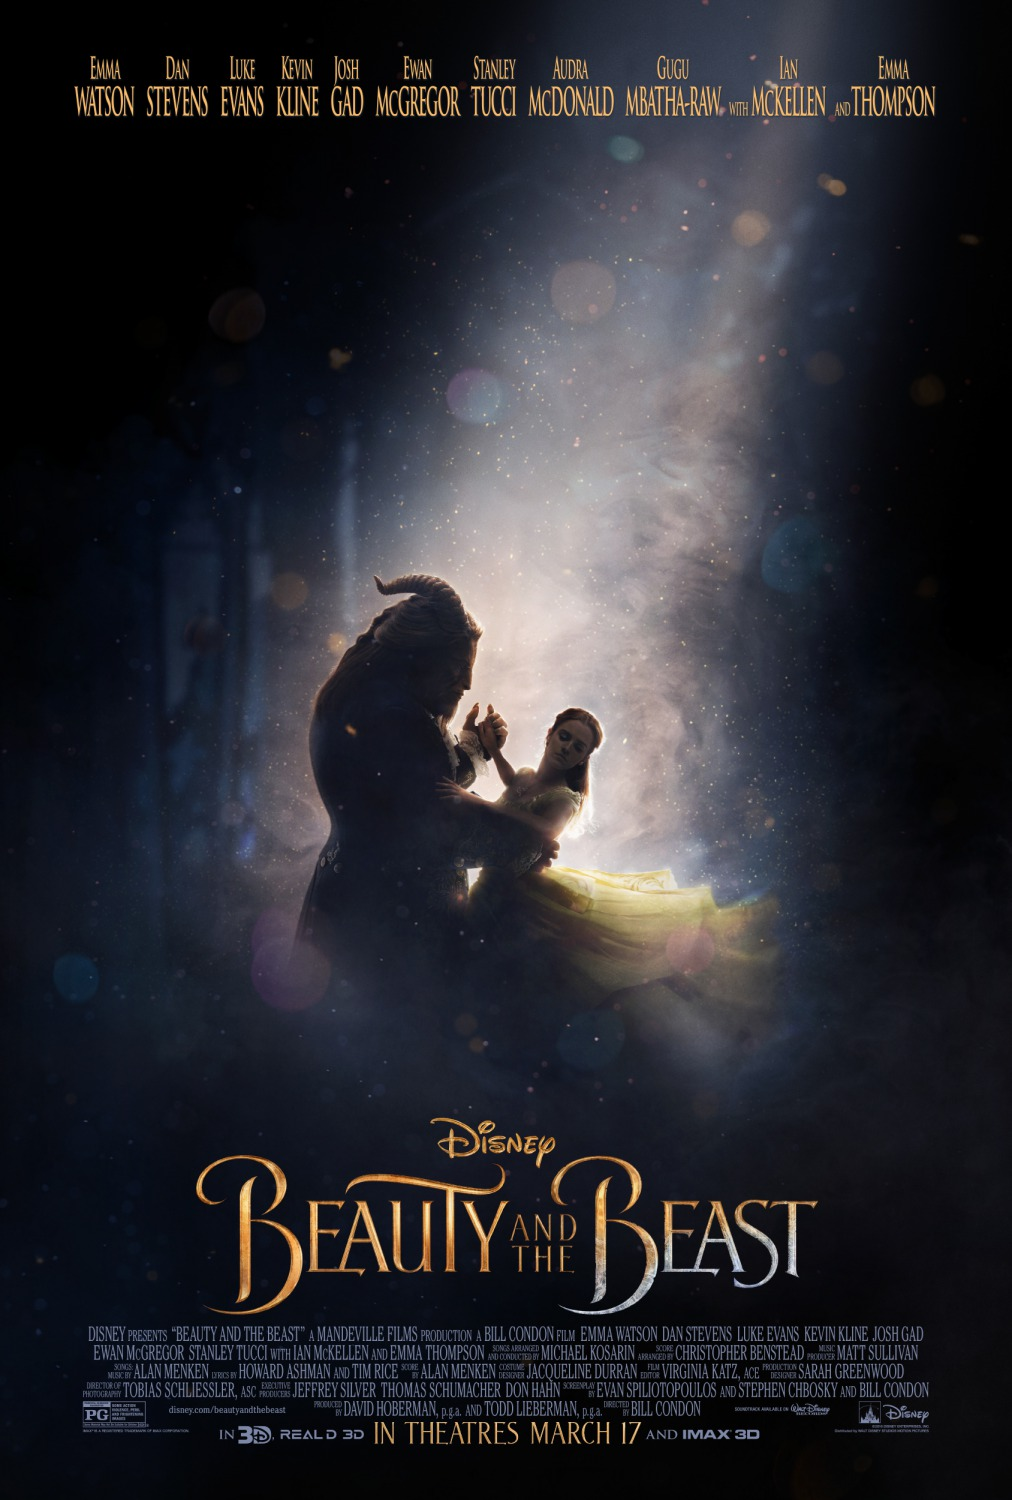 http://img5.downloadha.com/hosein/Movie/May%202017/Beauty-and-the-Beast-2017-cover-large.jpg